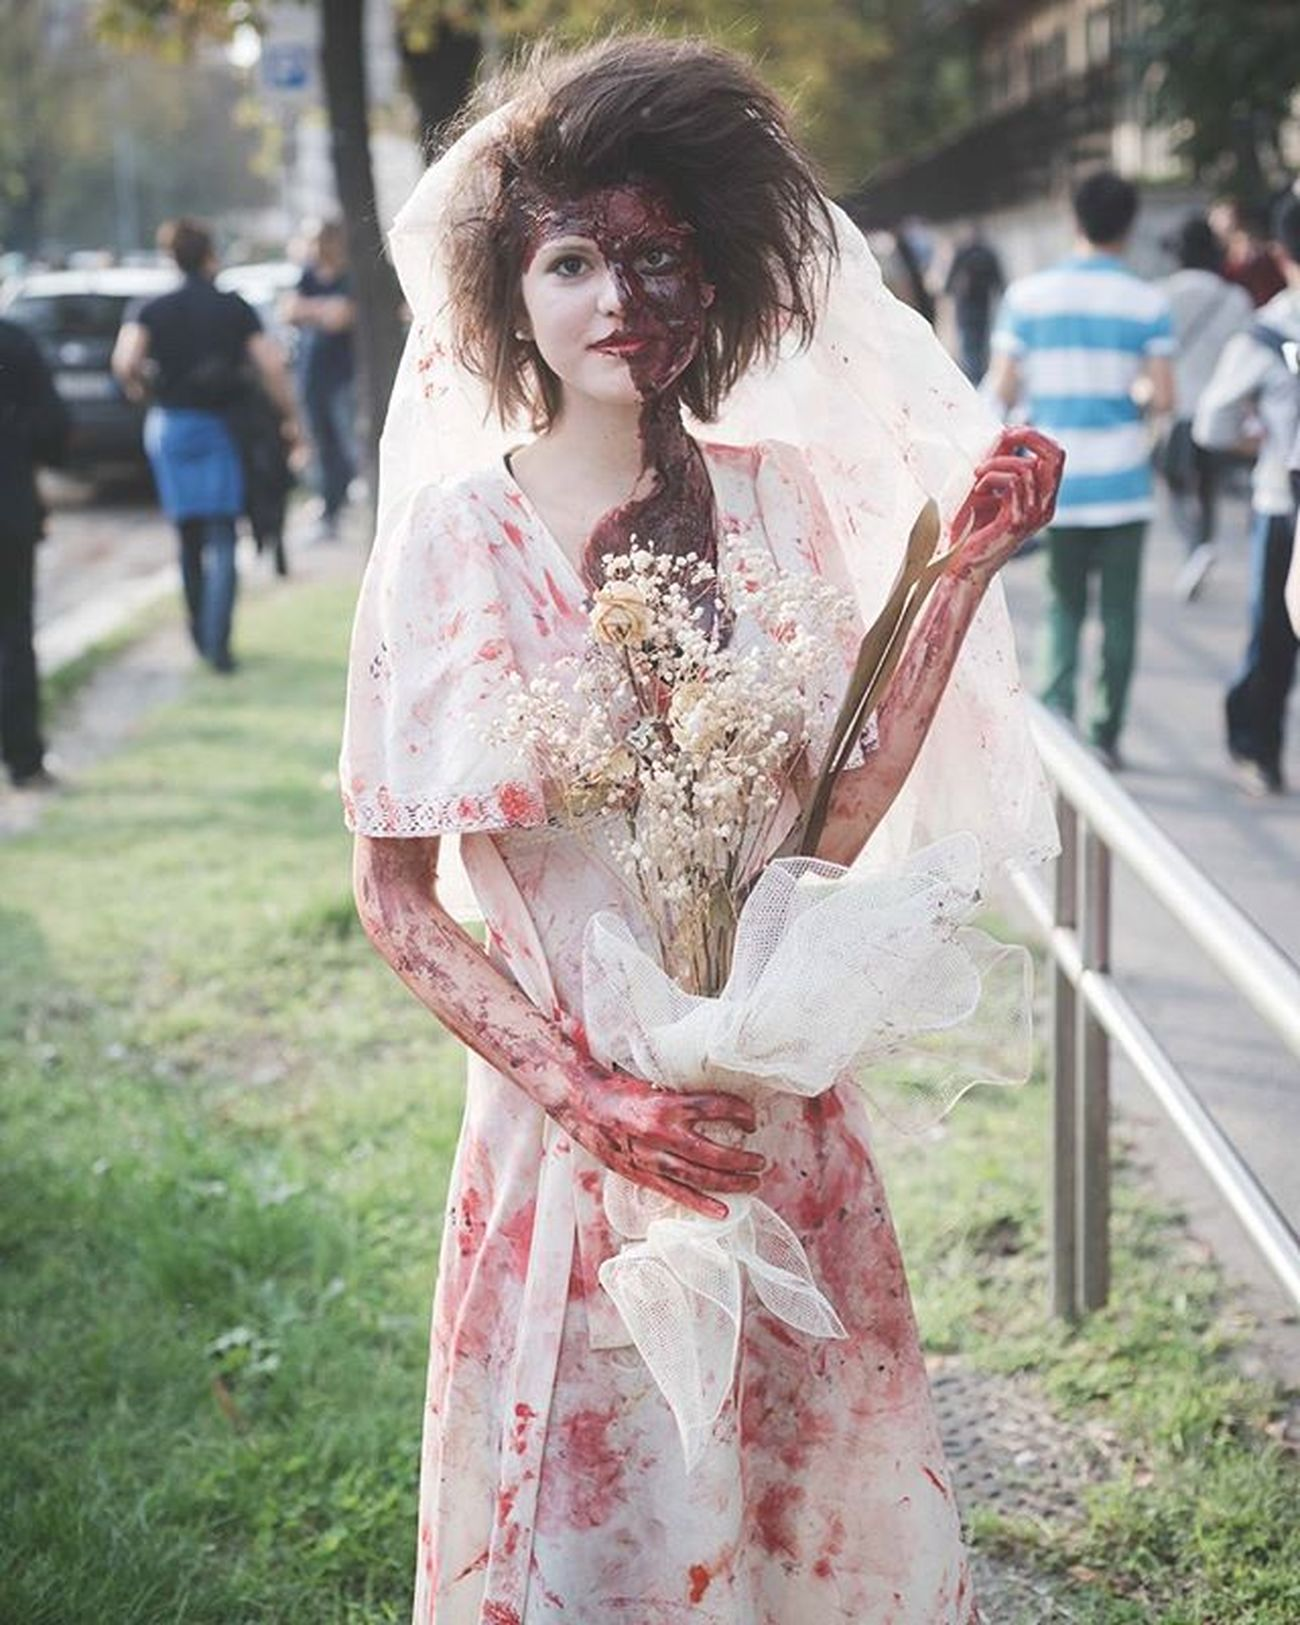 Zombie Walk 2015 in Milan - take a look at the whole gallery at the link below and have a great Saturday night! http://www.eugeniomarongiu.it/ !/index/G0000AH8OwrQrvZA - Zombie Zombies  Zombiewalk2015 Zombieapocalypse Zombiewalkmilano Horror Halloween Carnival Mask Street Portraitpage Portrait Streetphotography Firstpost  Savetheart Livefolk Vscoaward Liveauthentic Visualgang Zombiewalk  Visualauthority Livefolk Instagoodmyphoto Vscoportrait FolkPortraits peoplescreatives witch vsco vscocam